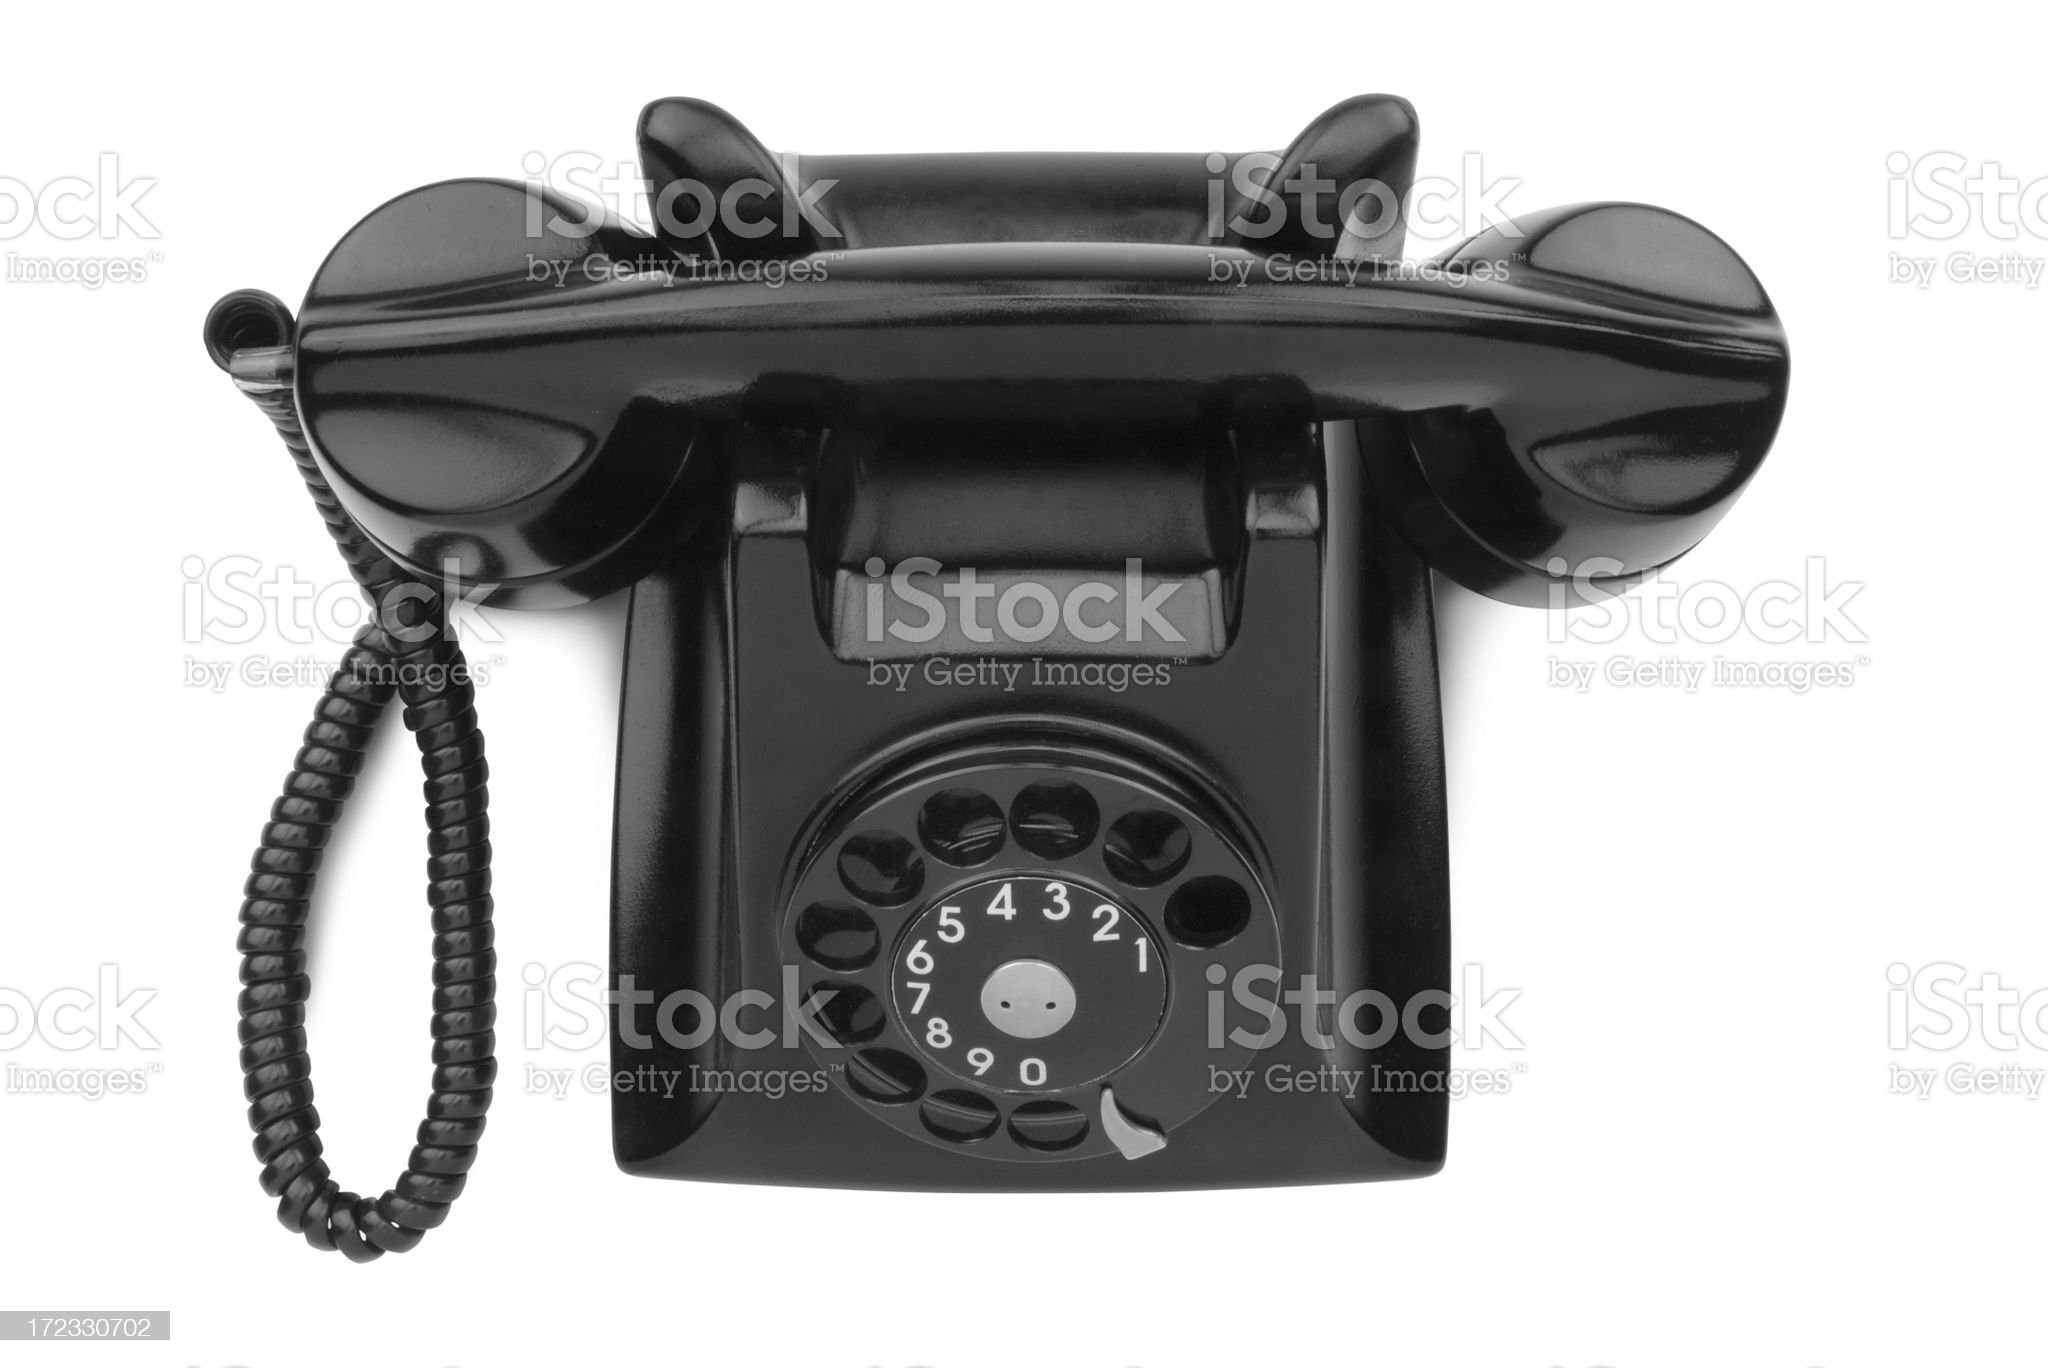 Black Desk Phone with Path royalty-free stock photo